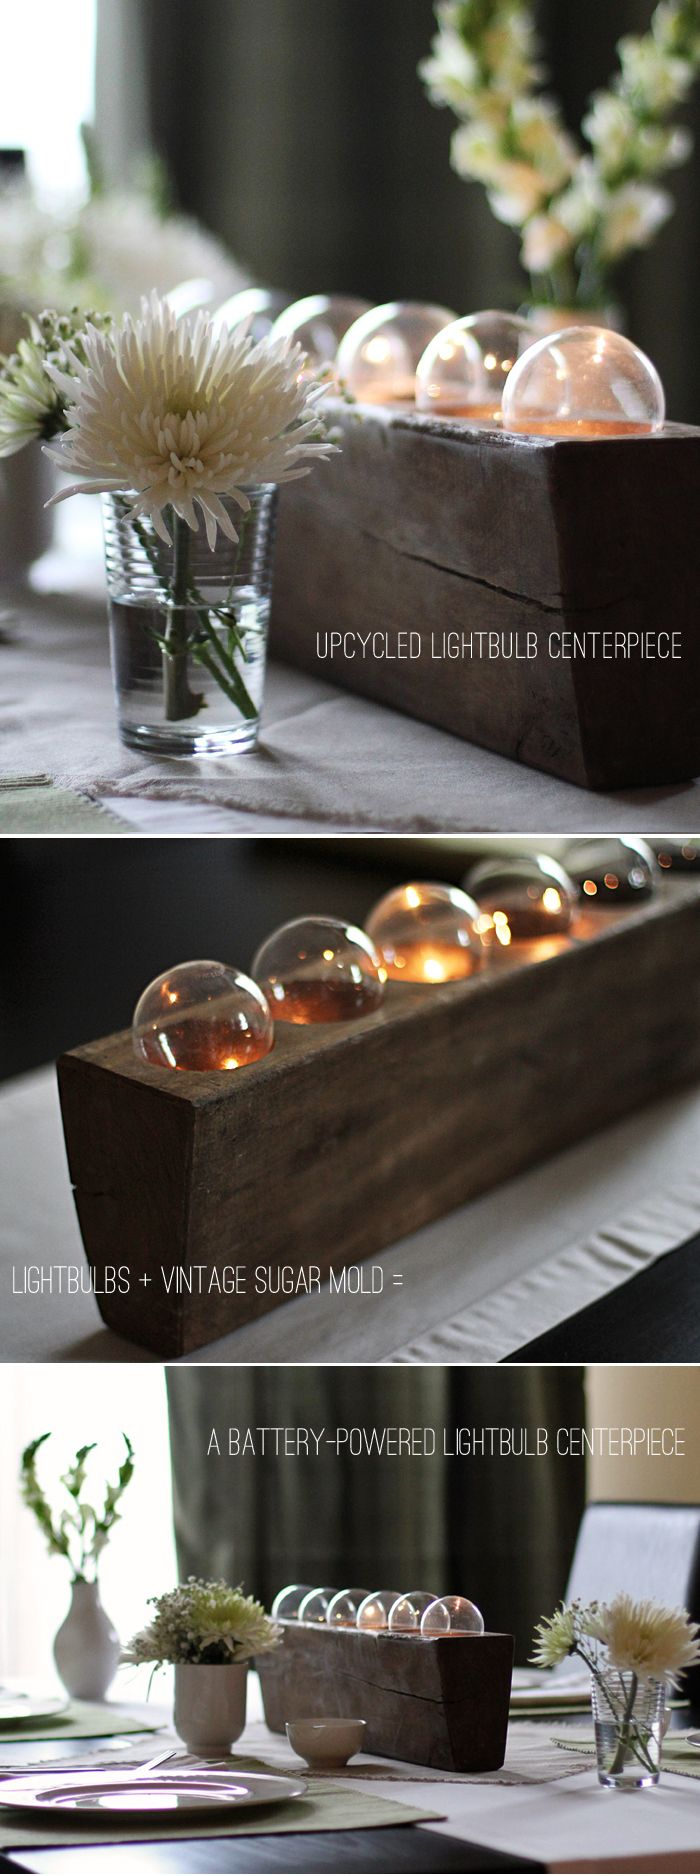 Upcycled Lightbulb Centerpiece.  Not the best tutorial, but the battery powered lights look very industrial and cool.  Or maybe very farm/country.  Could be either.